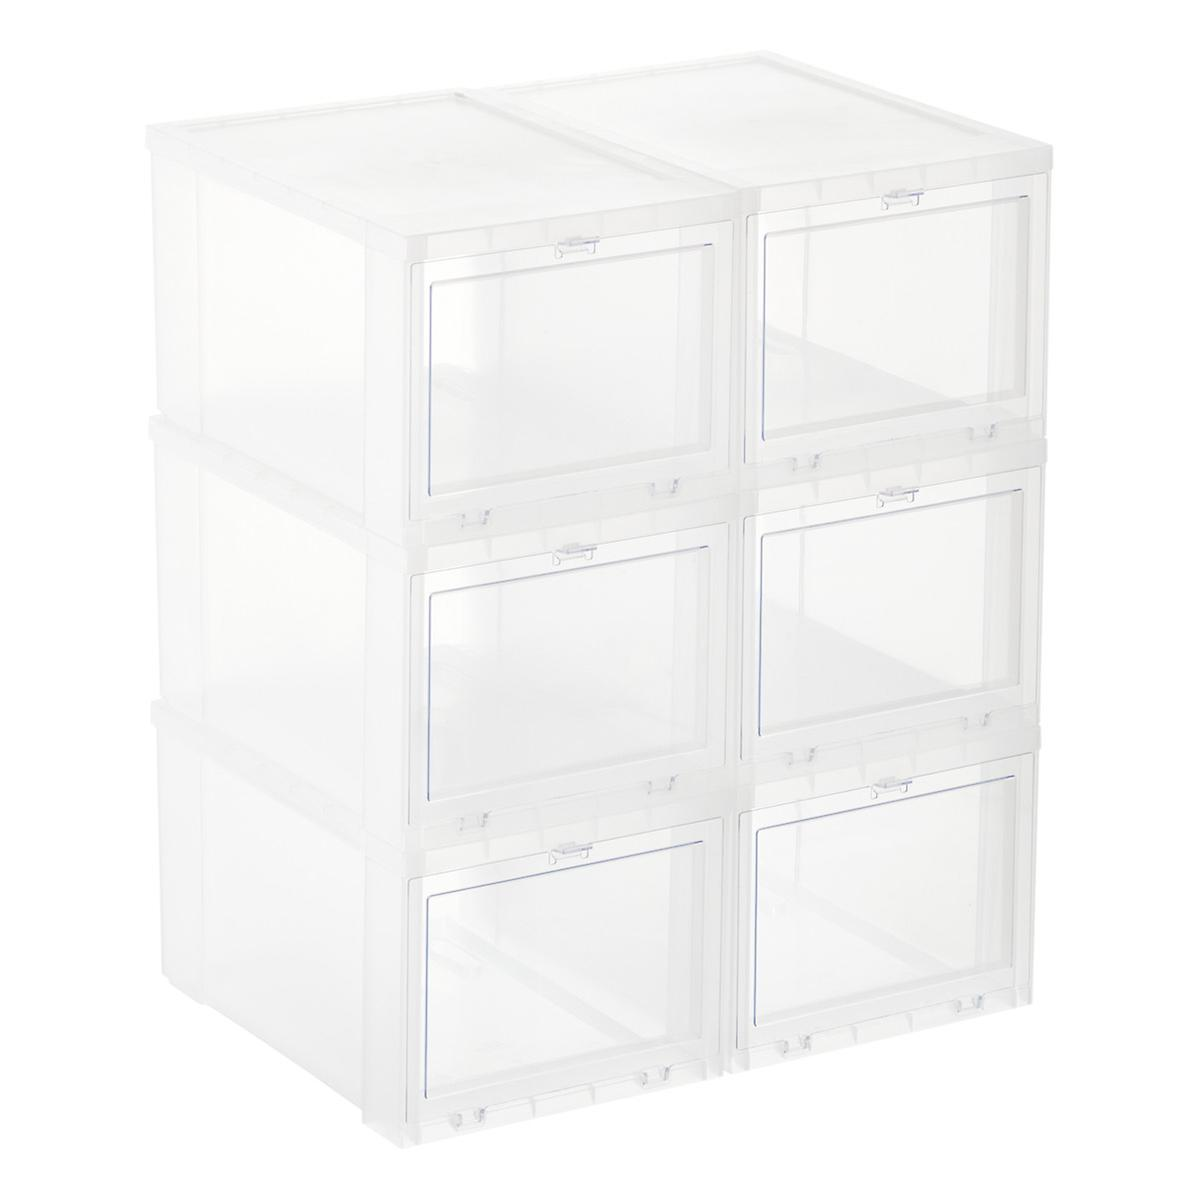 Drop Front Shoe Boxes Sneaker Storage Boxes The